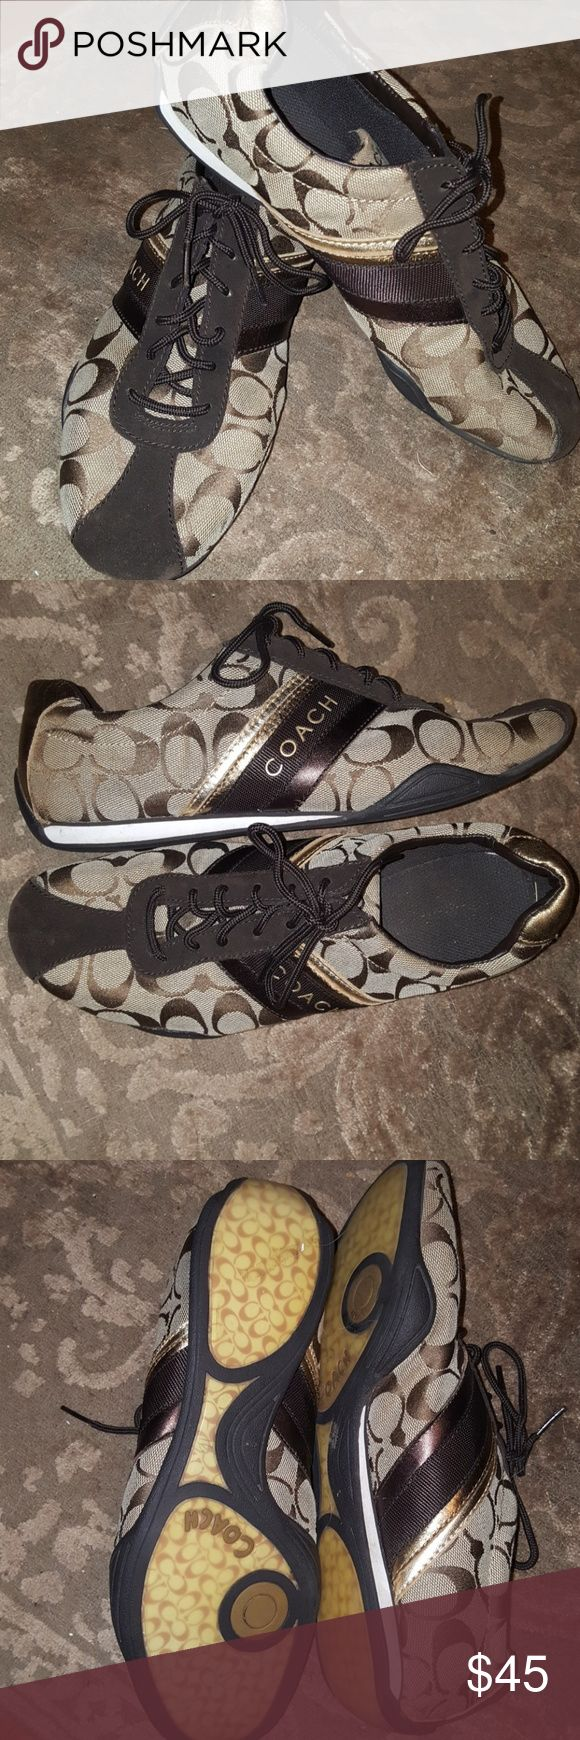 DEALS OF TODAY! ☘ BROWN COACH TENNIS SHOES Gently worn brown Coach tennis shoes with gold, bronze and brown accents. Coach Shoes Sneakers